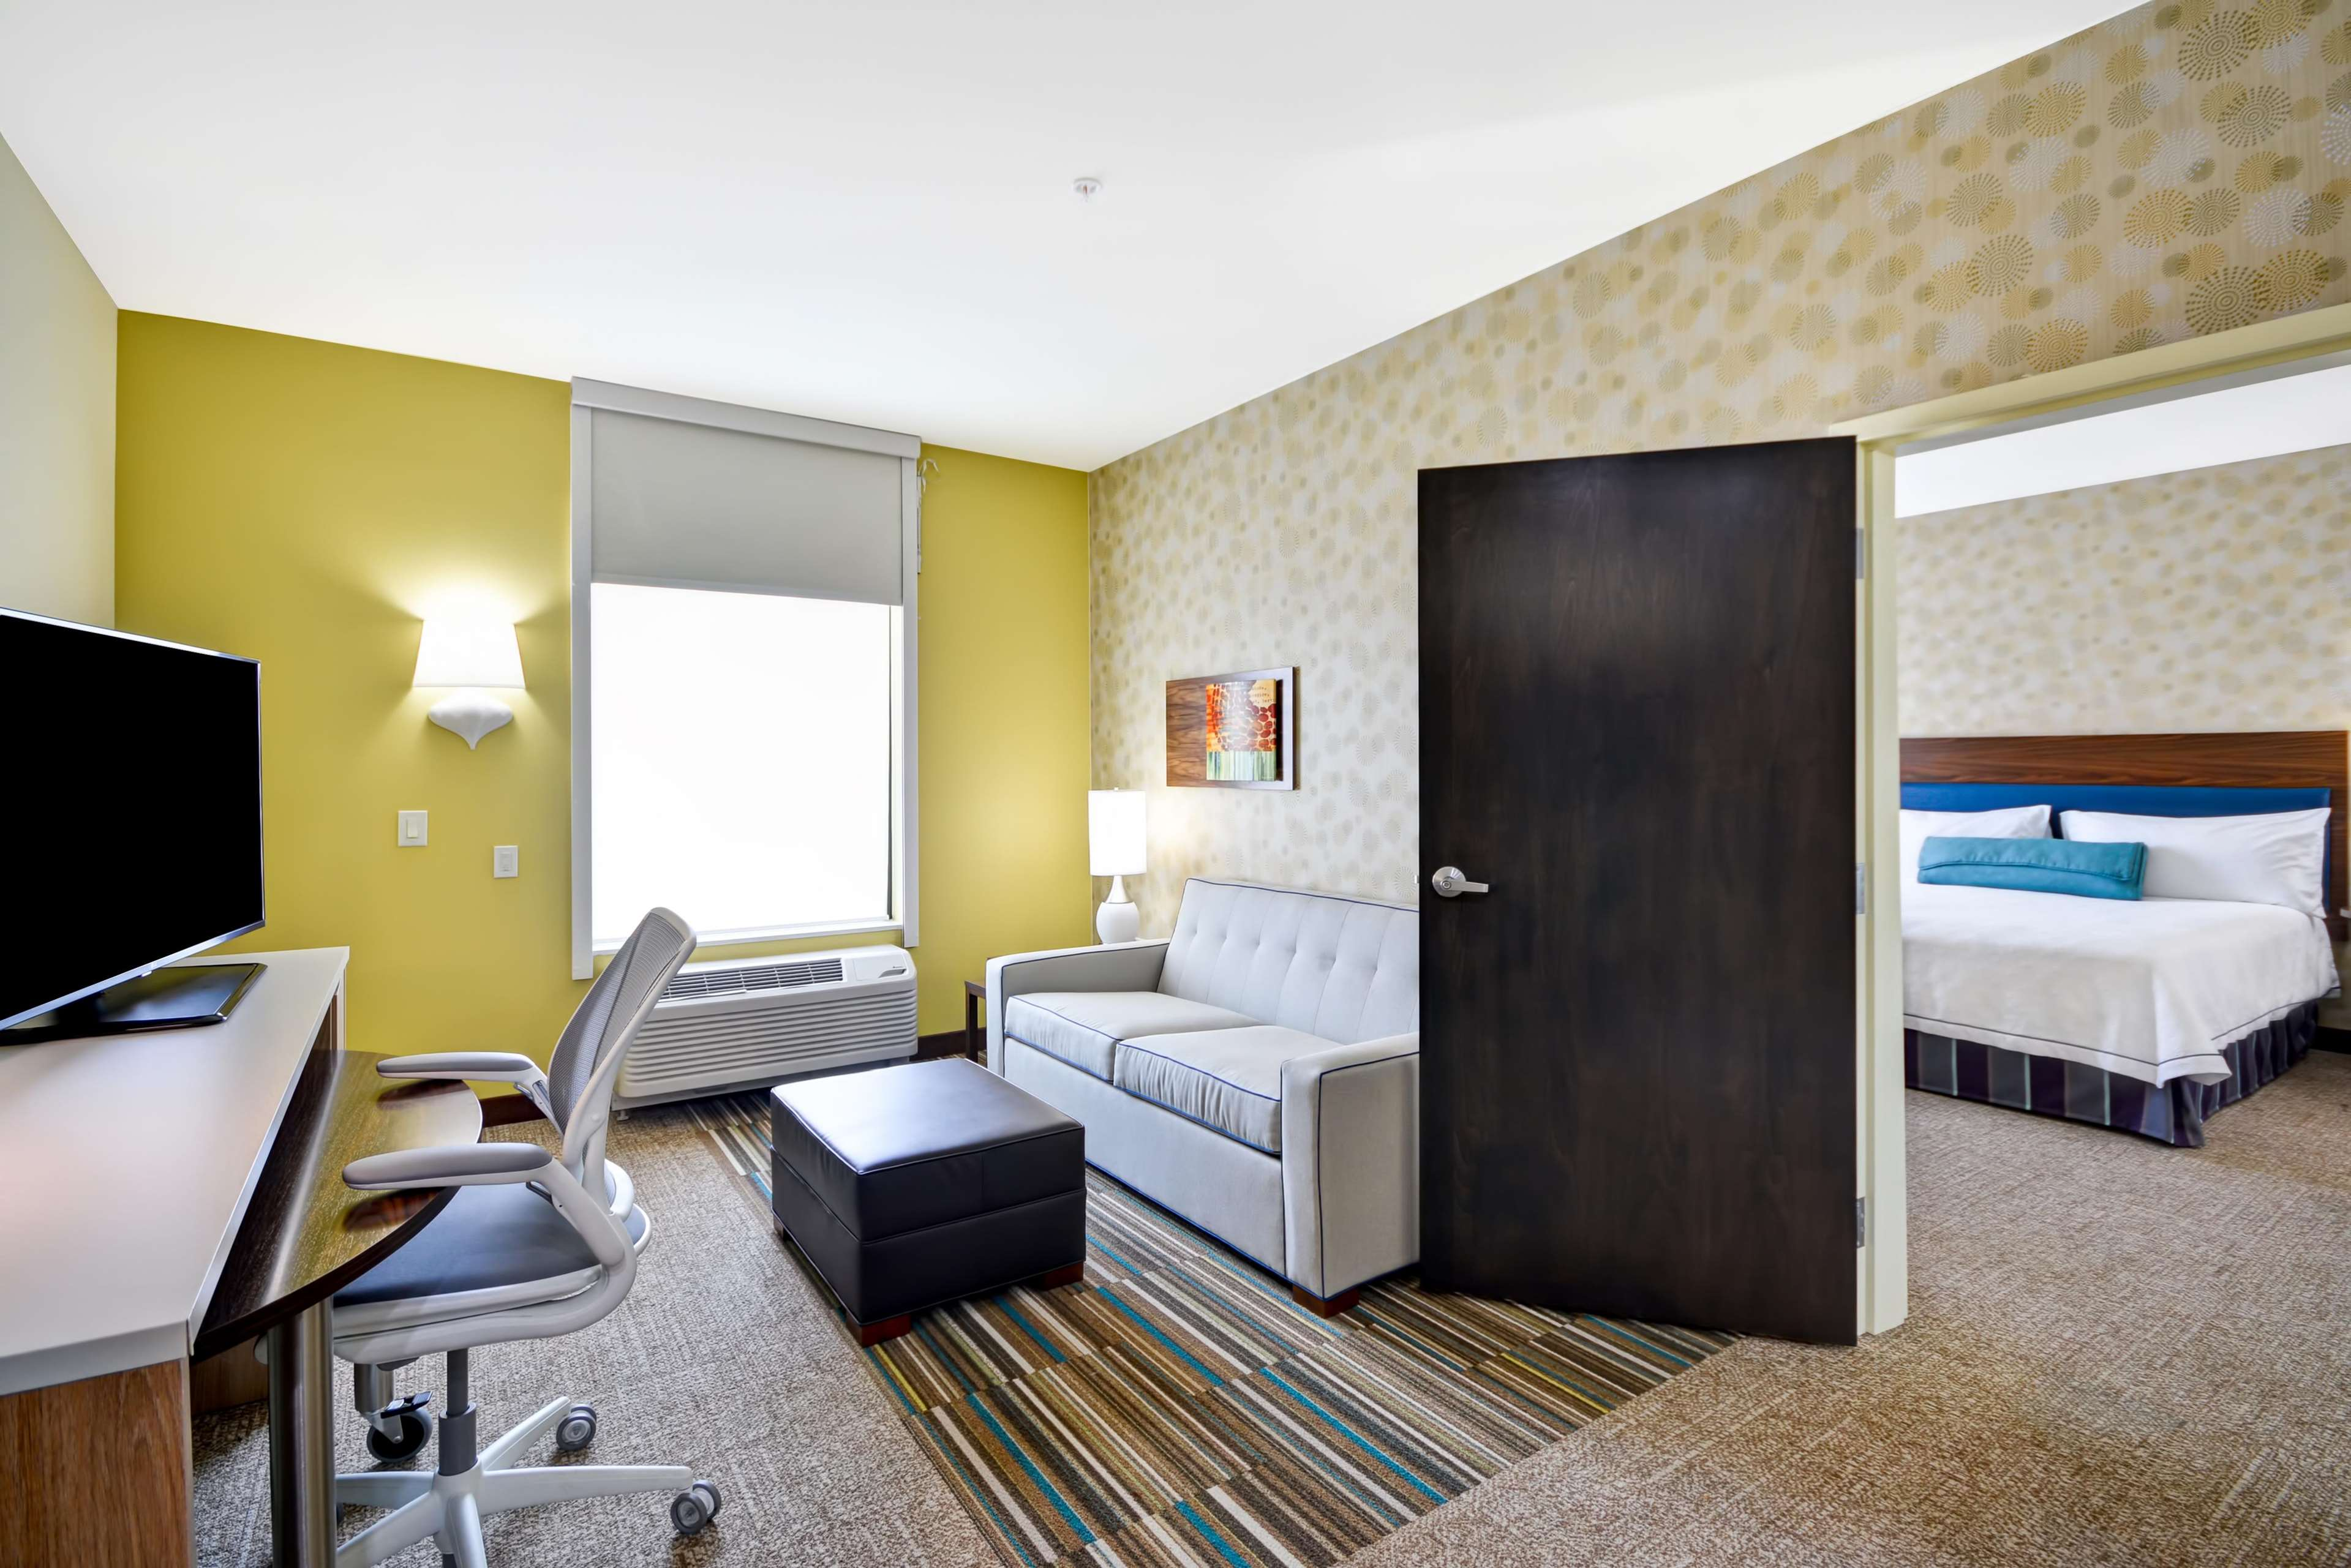 Home2 Suites by Hilton Fort Worth Southwest Cityview image 16